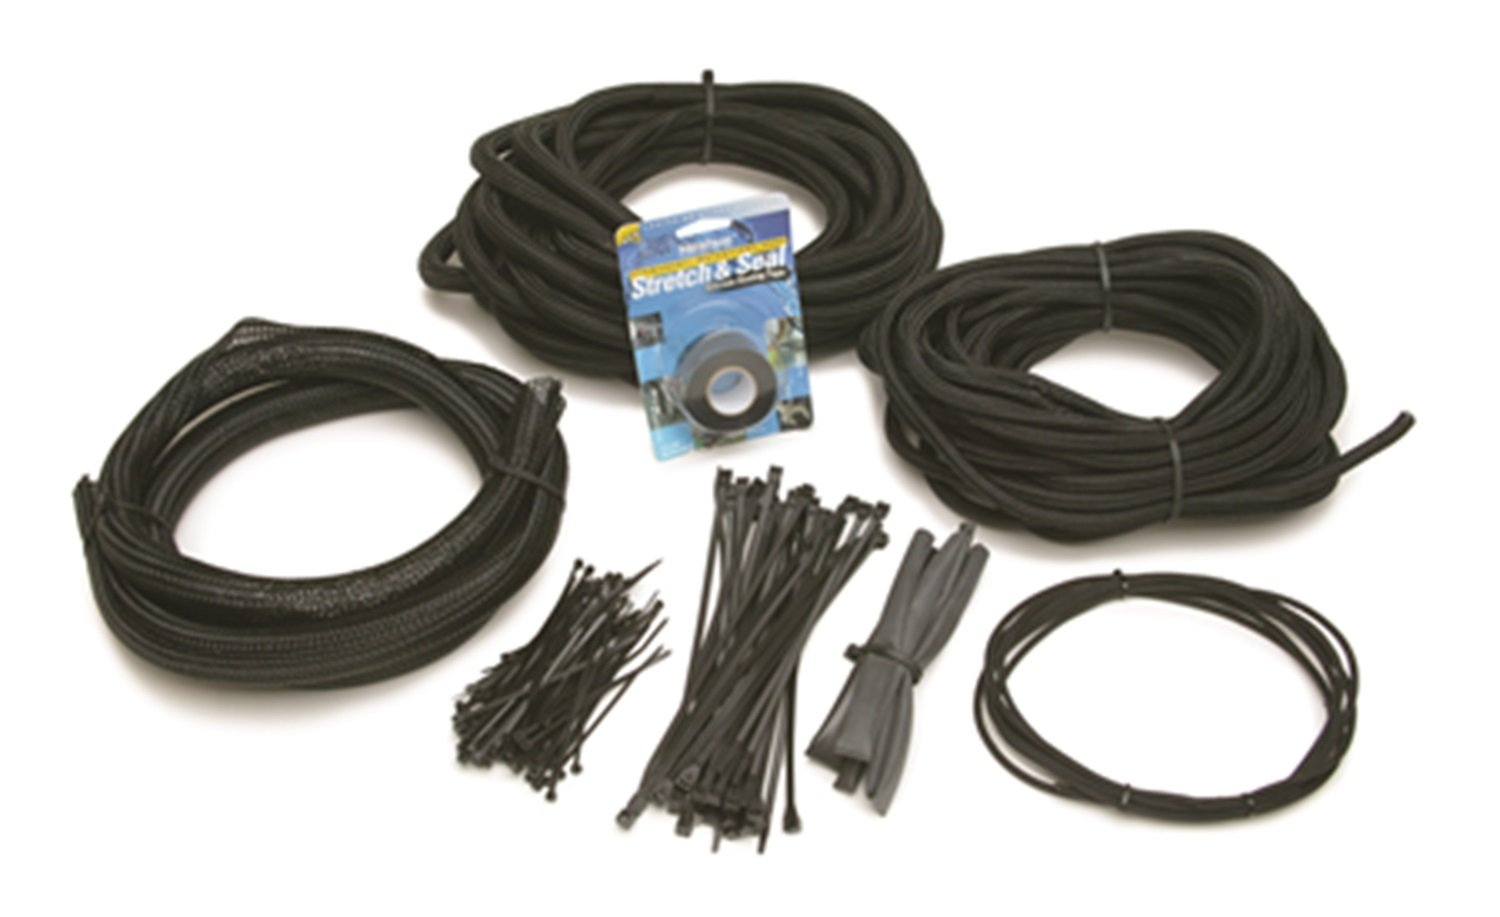 61KfhP ZlhL._SL1500_ amazon com painless wiring 70920 power braid chassis kit automotive painless wiring harness rebate at creativeand.co